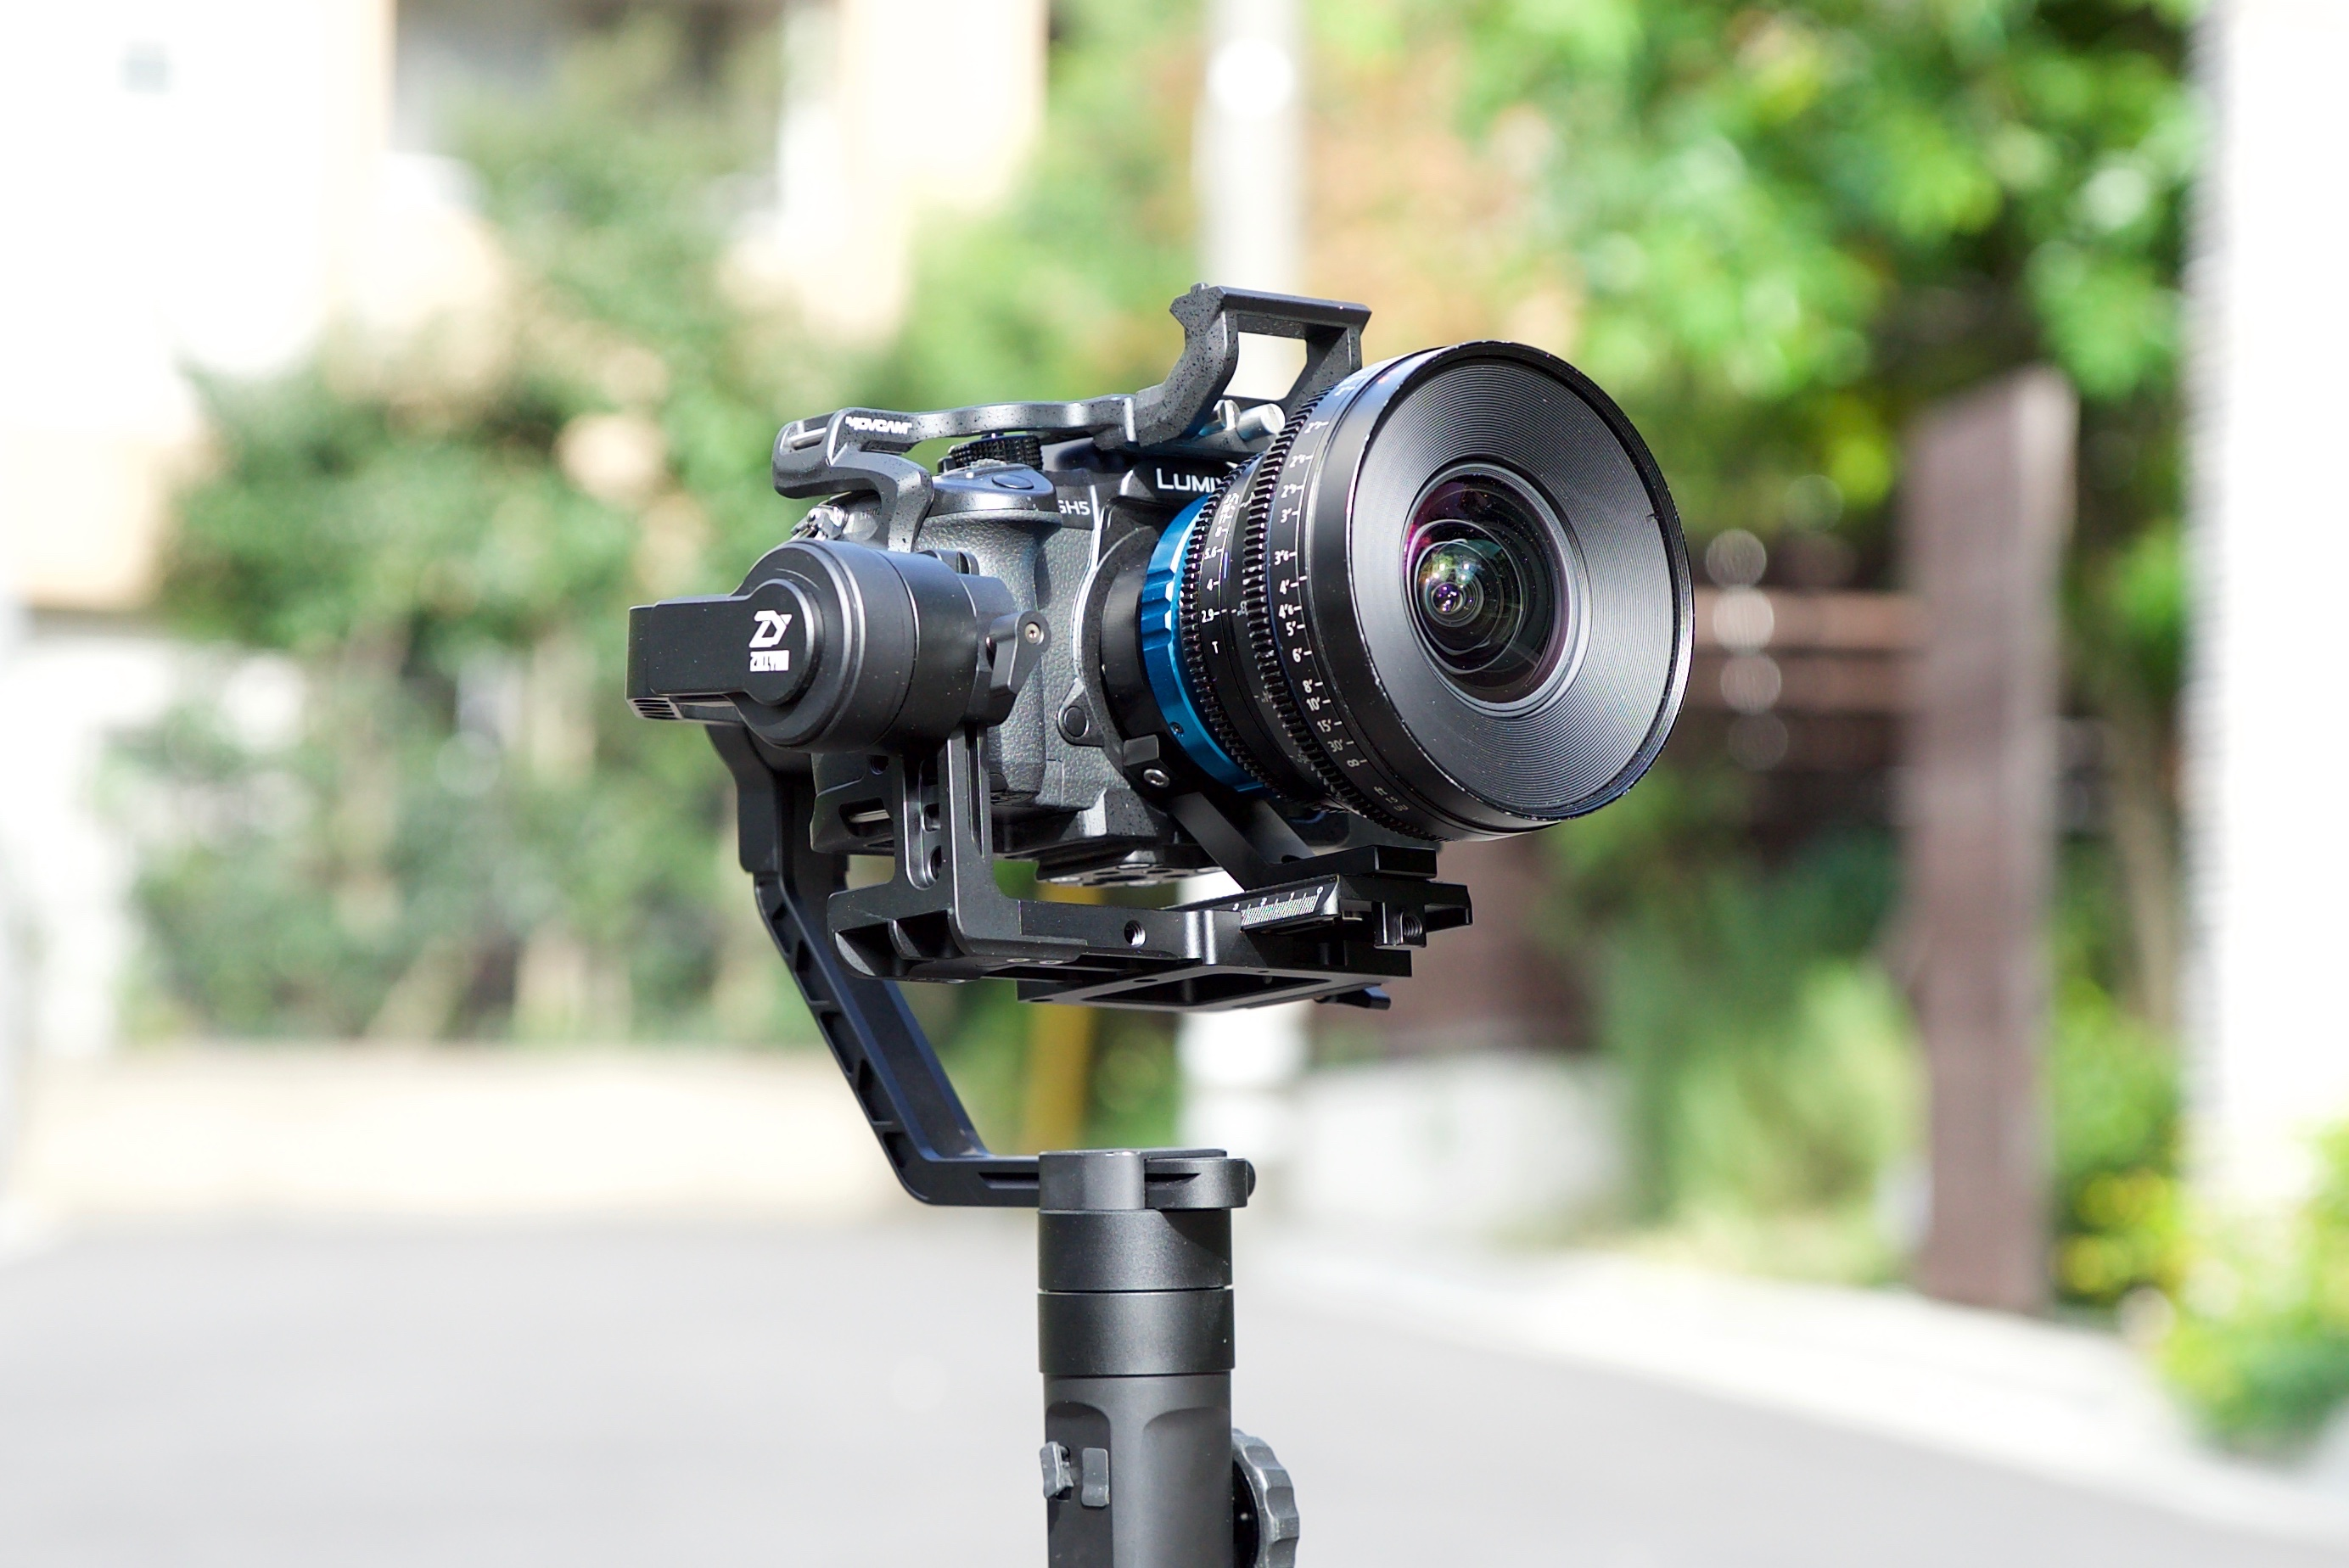 Zhiyun-Tech Crane 2 – 3-axis handheld stabilizer with integrated follow focus review - Newsshooter